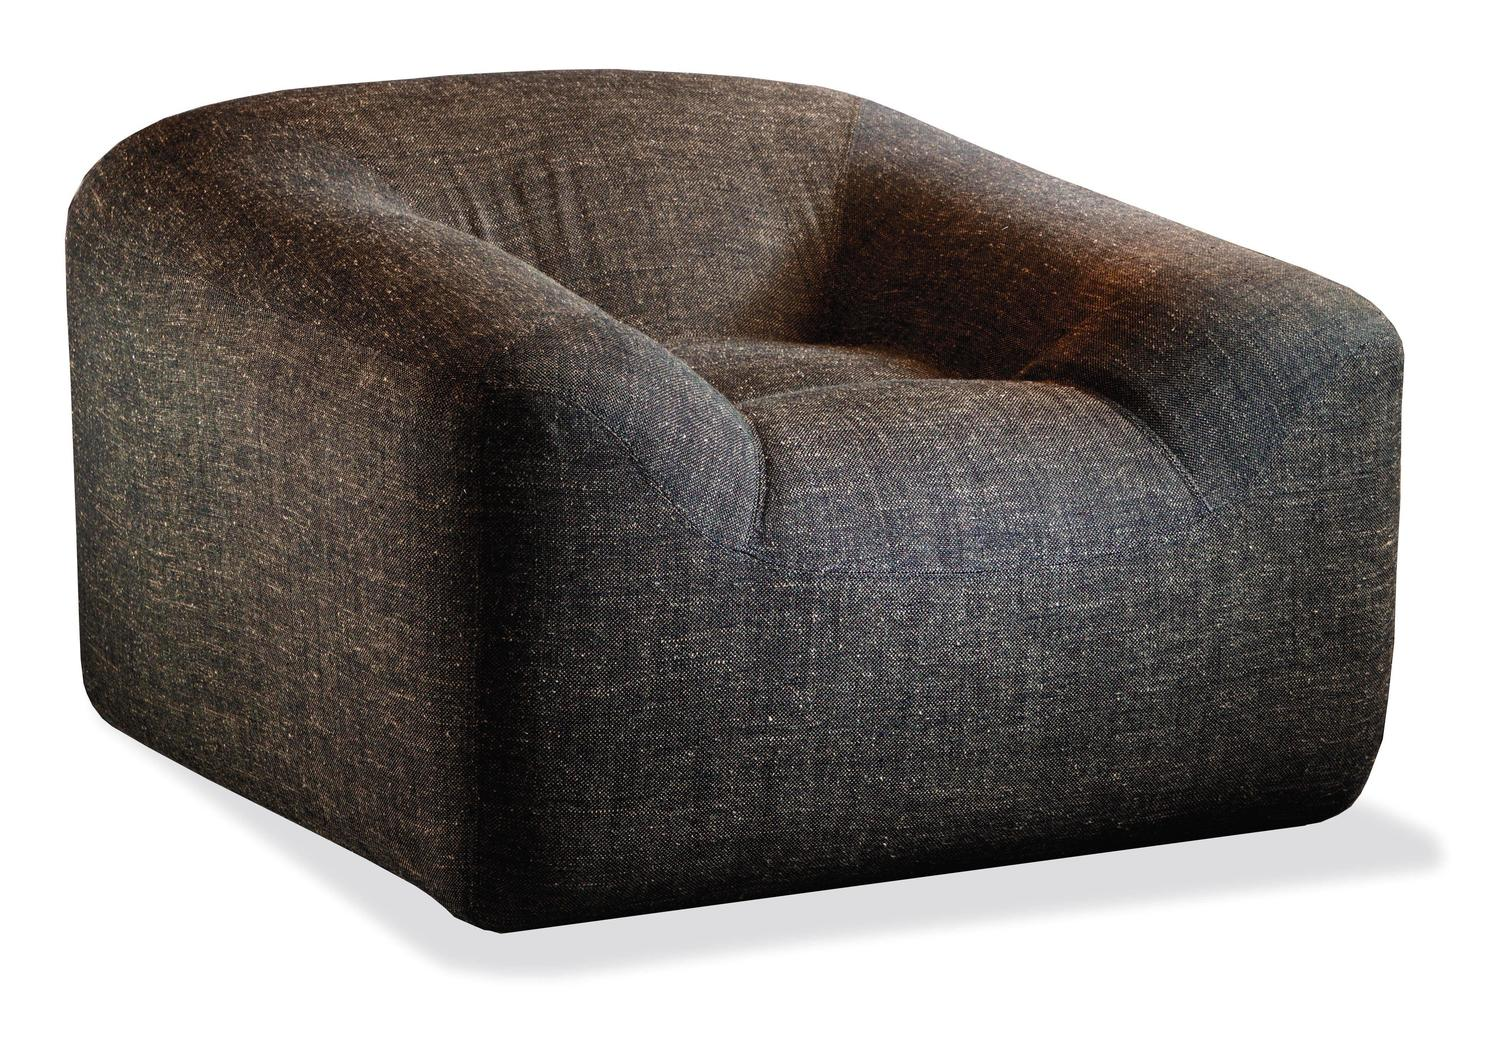 Italian modern maxence small armchair and pouf ottoman by for Small armchair with ottoman